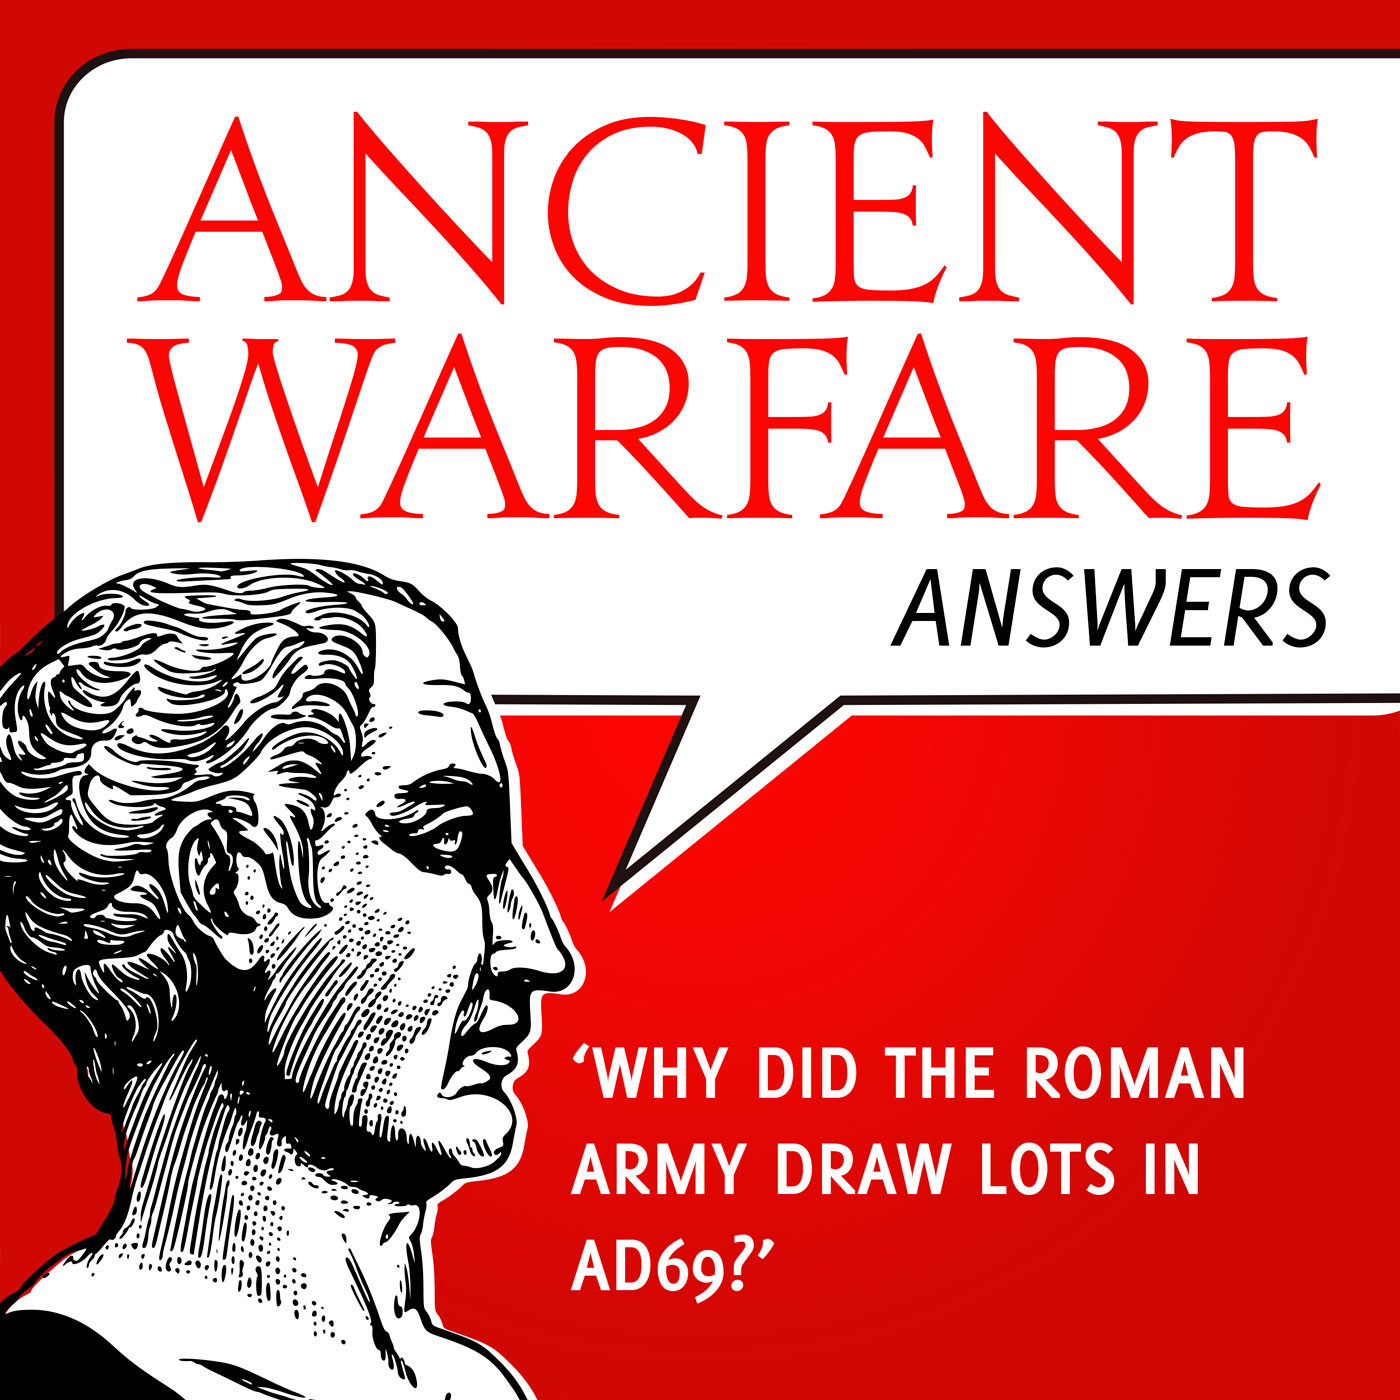 AWA - Why did the Roman army draw lots in AD69?